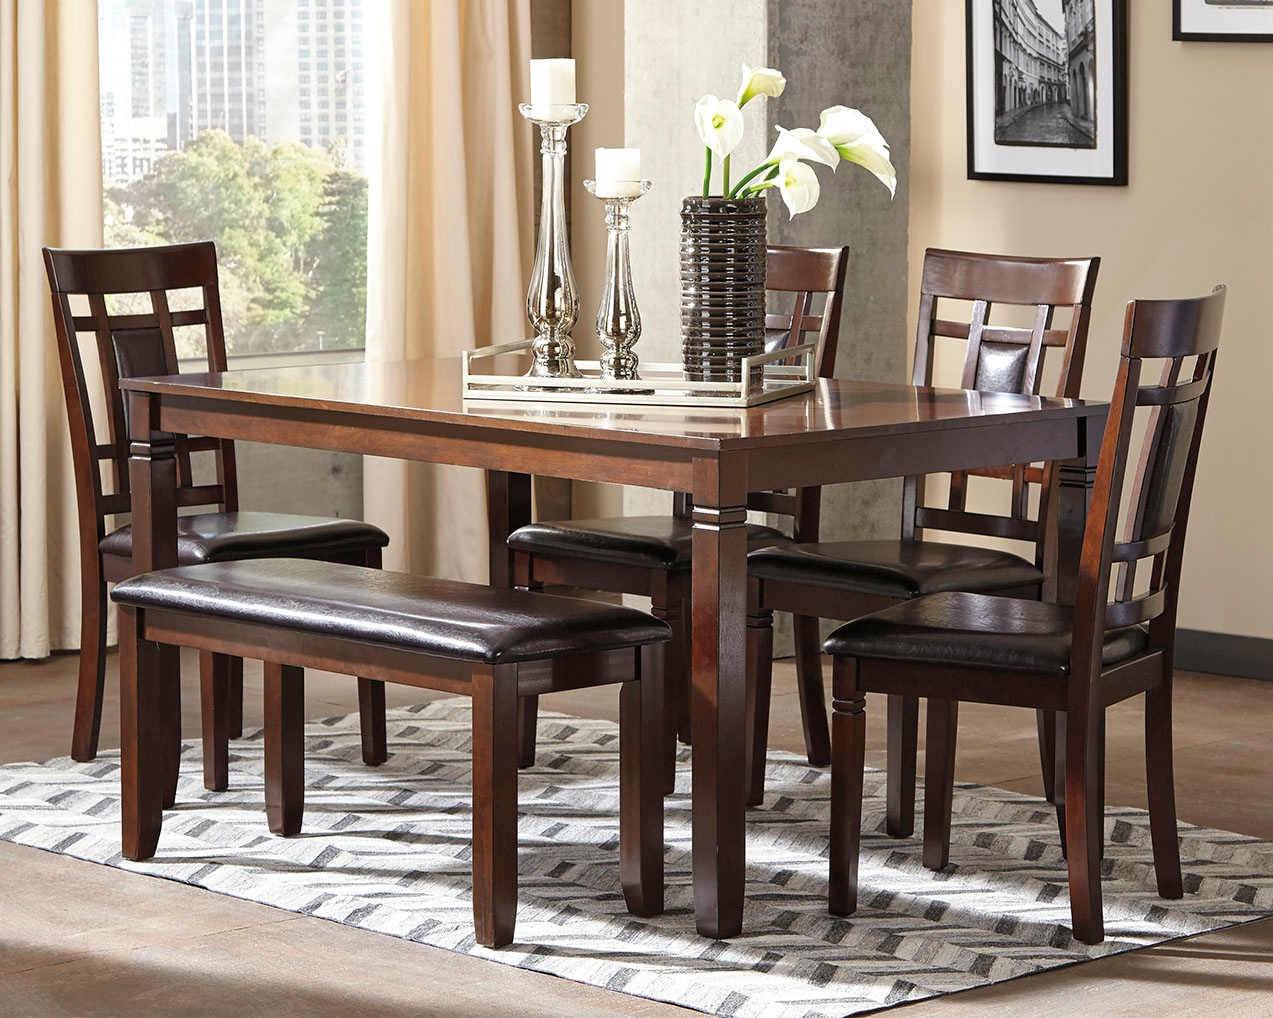 Bennox Dining Room Table And Chairs With Bench Set Of 6 By Signature Design By Ashley D384 325 Scholet Furniture